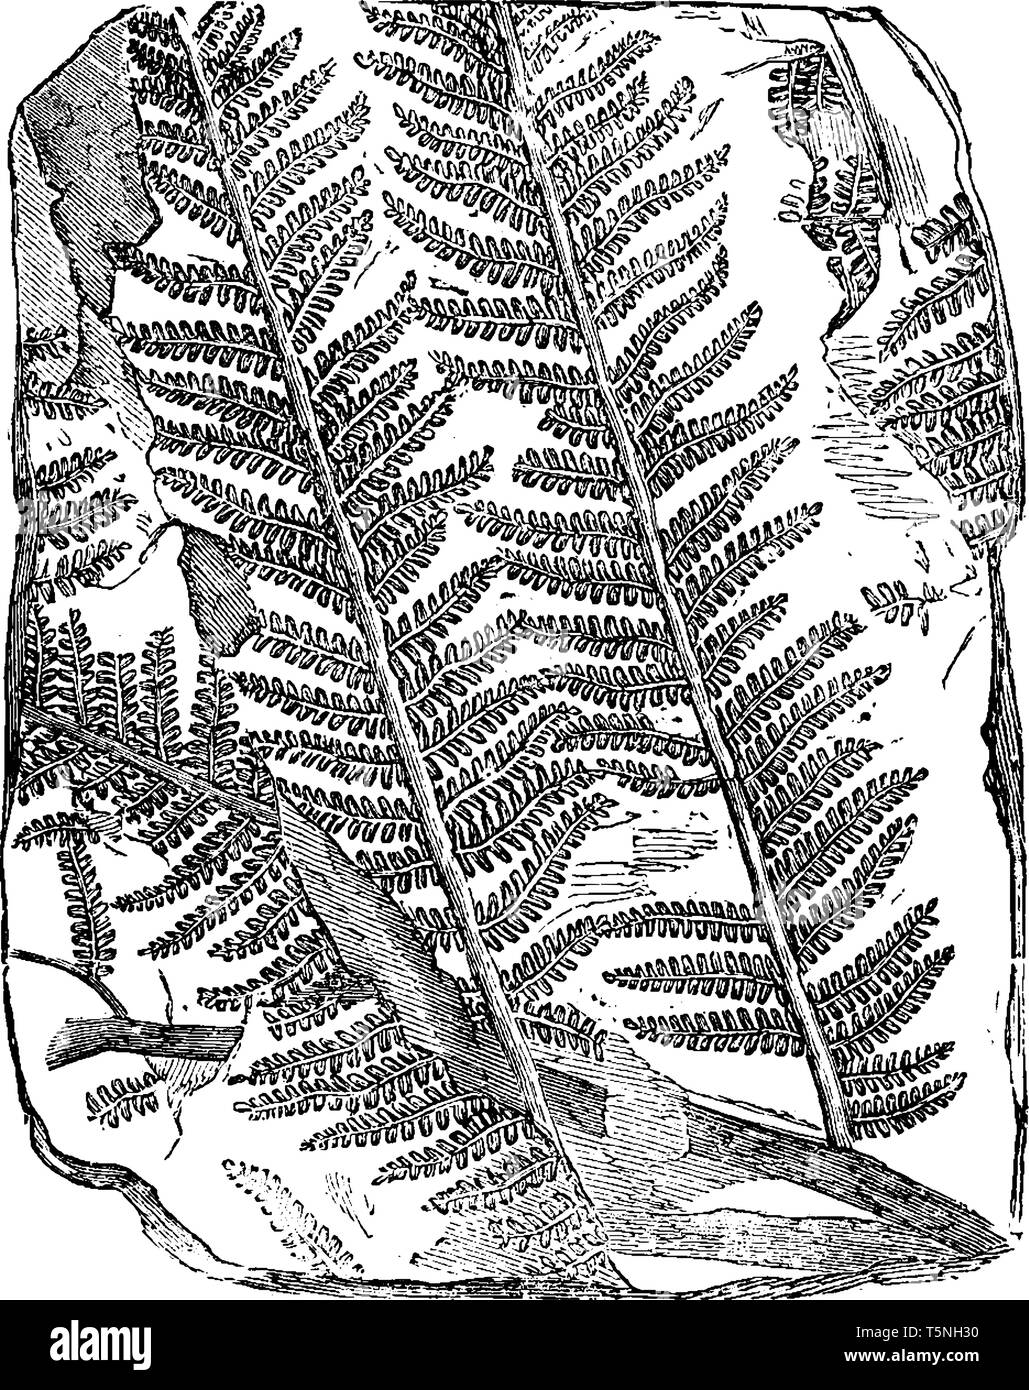 A picture of Fossil Tree Fern. Plants that flourished on earth millions of years ago are perfectly preserved as fossils, vintage line drawing or engra - Stock Vector